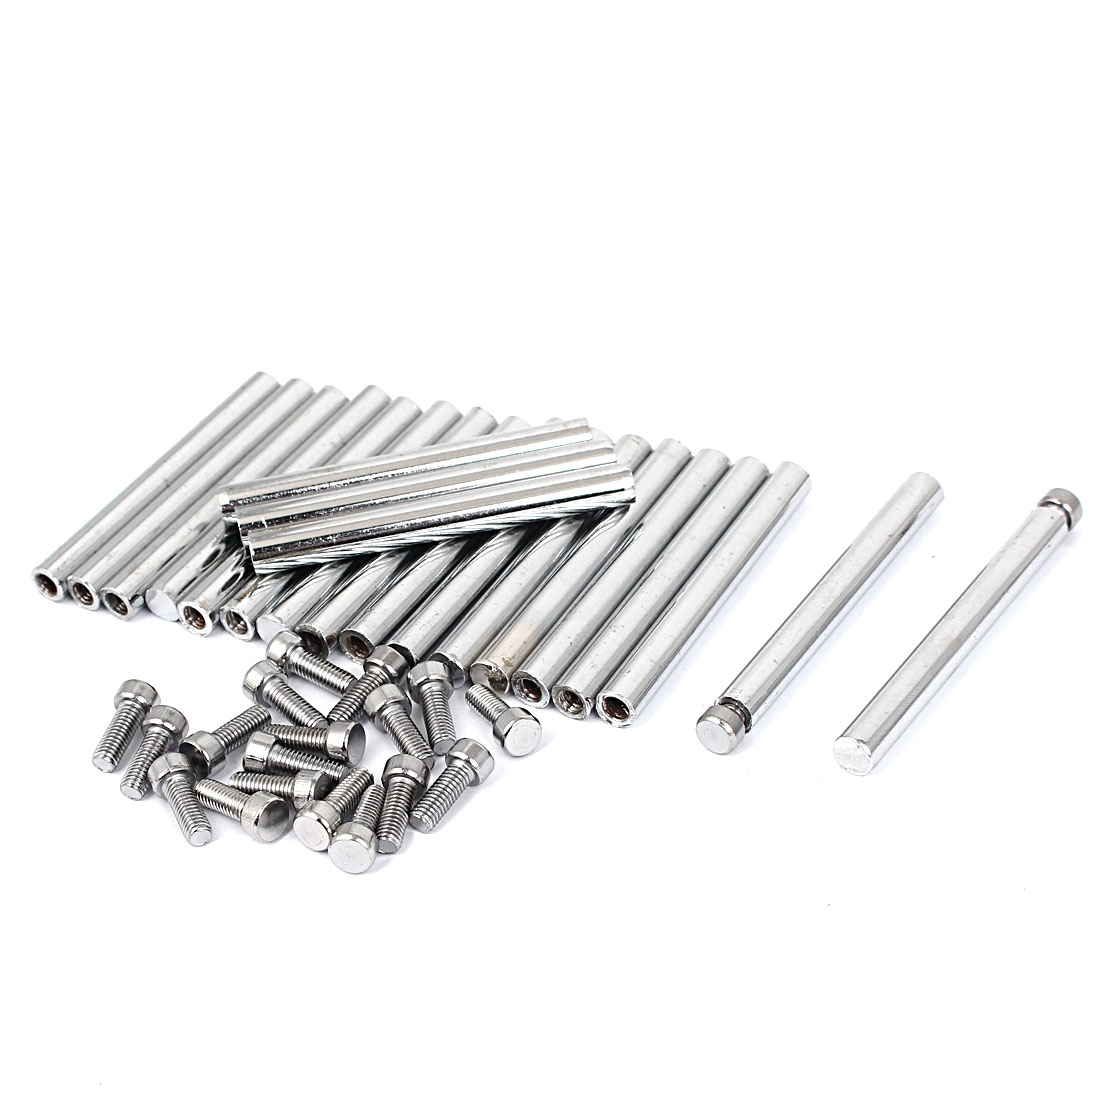 8mm x 75mm Stainless Steel Advertisment Nails Glass Wall Connector Standoff 20 Pcs